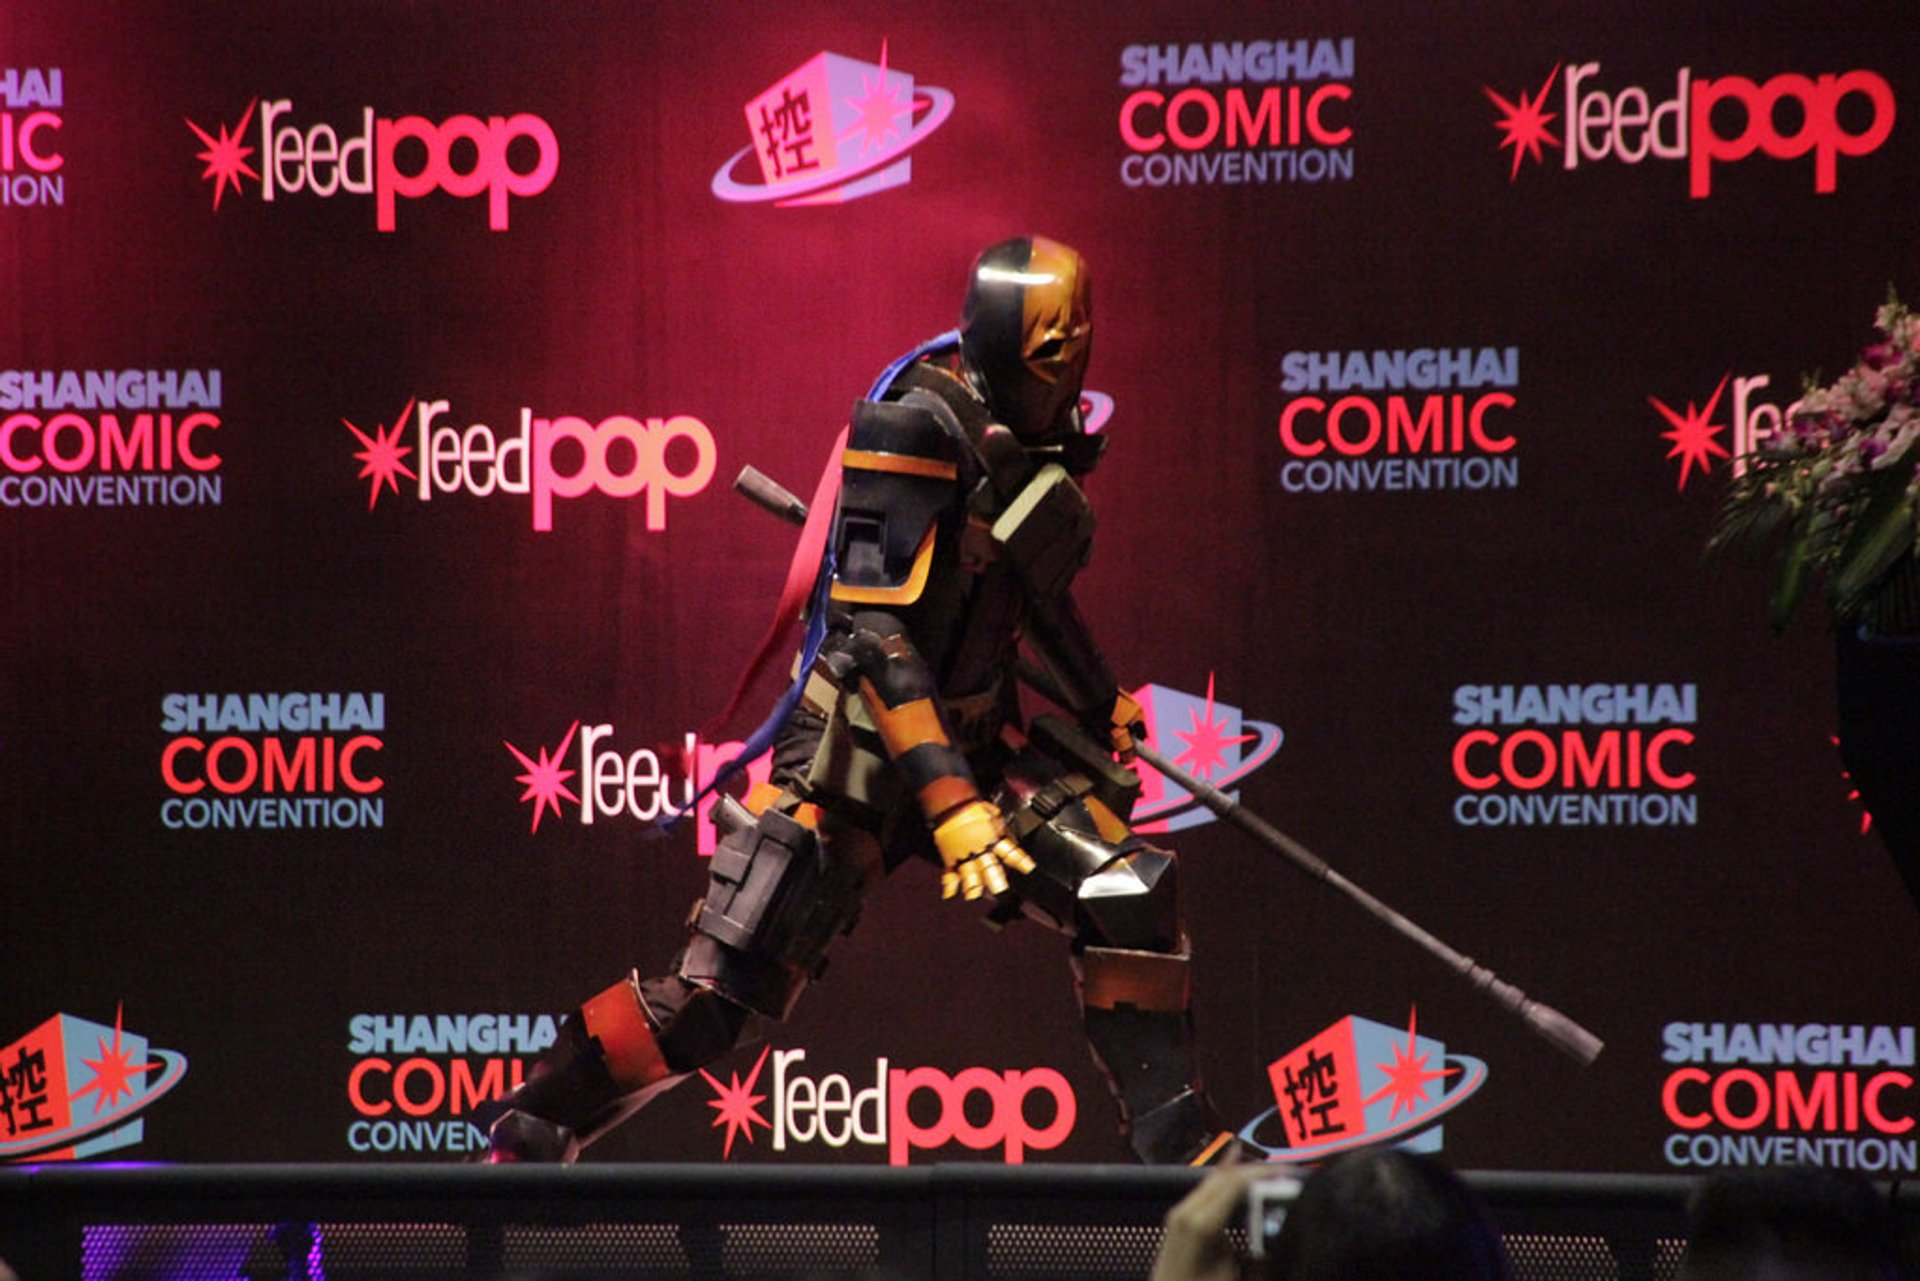 Shanghai Comic Convention in Shanghai - Best Season 2020